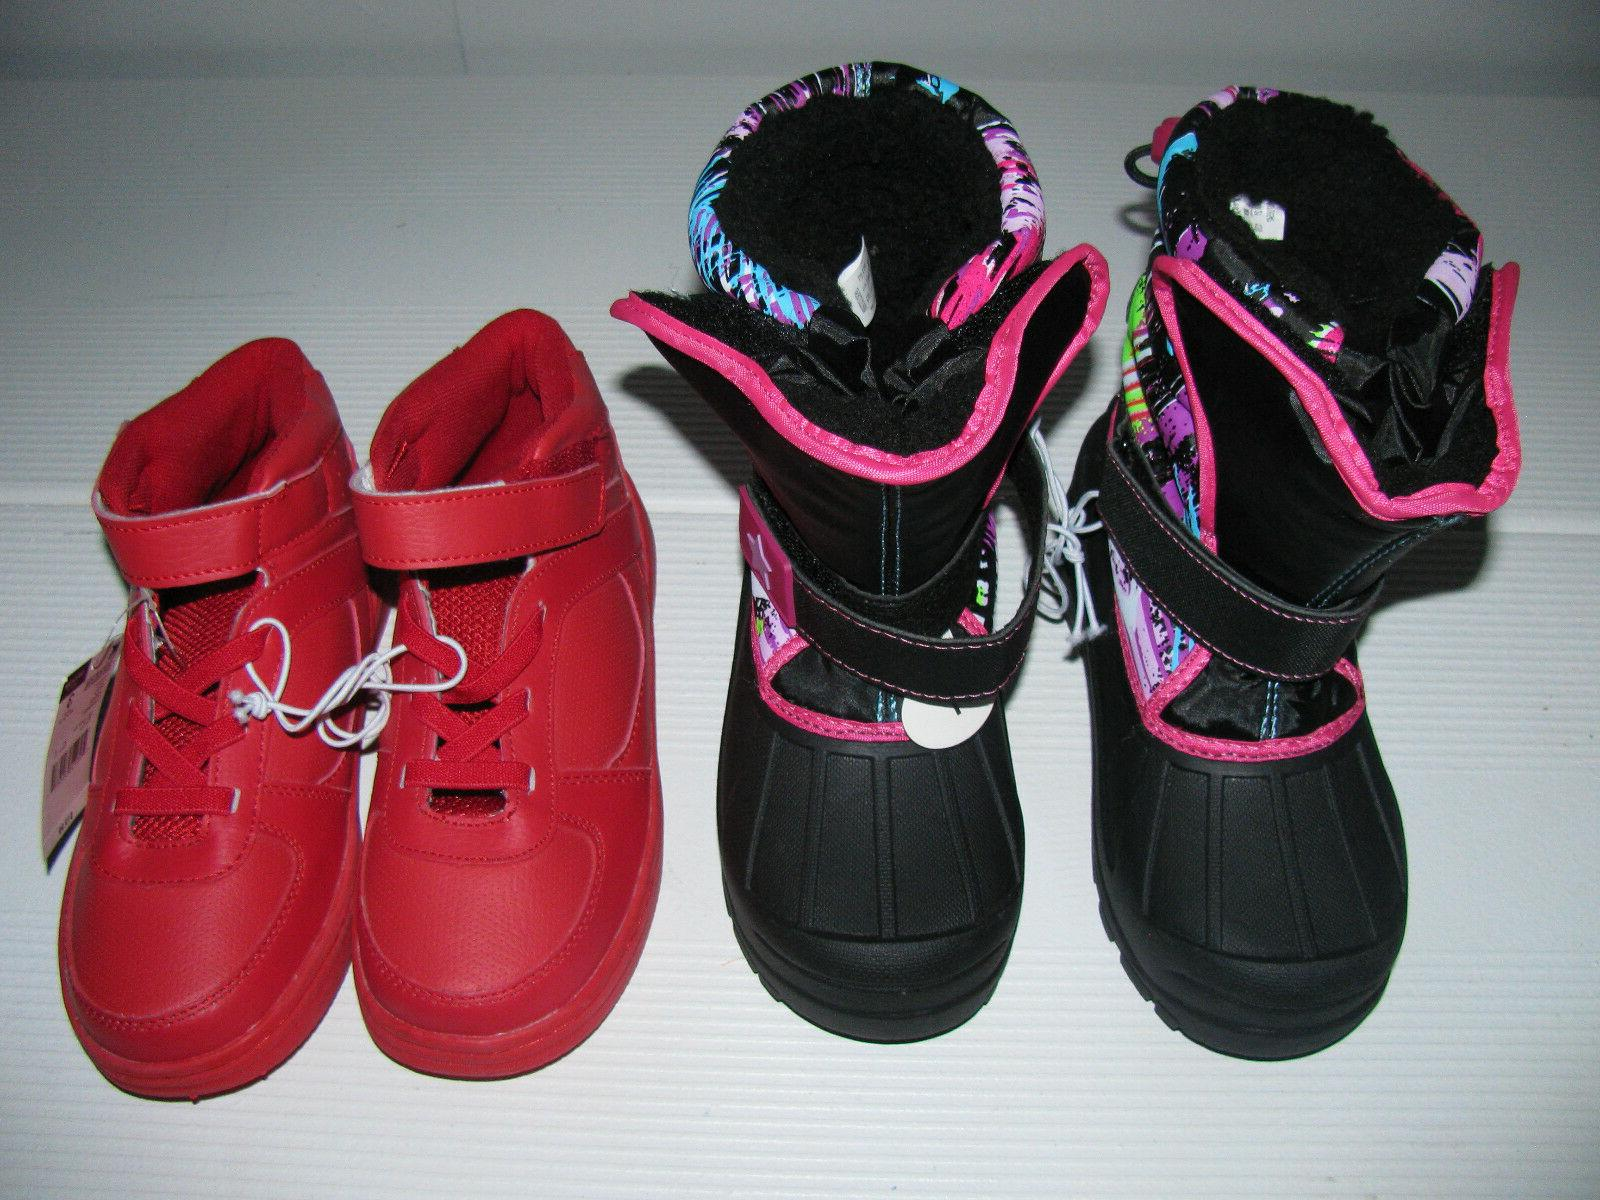 Two NEW Girls Winter Boots Size 13 & 1. Red w/ leather upper